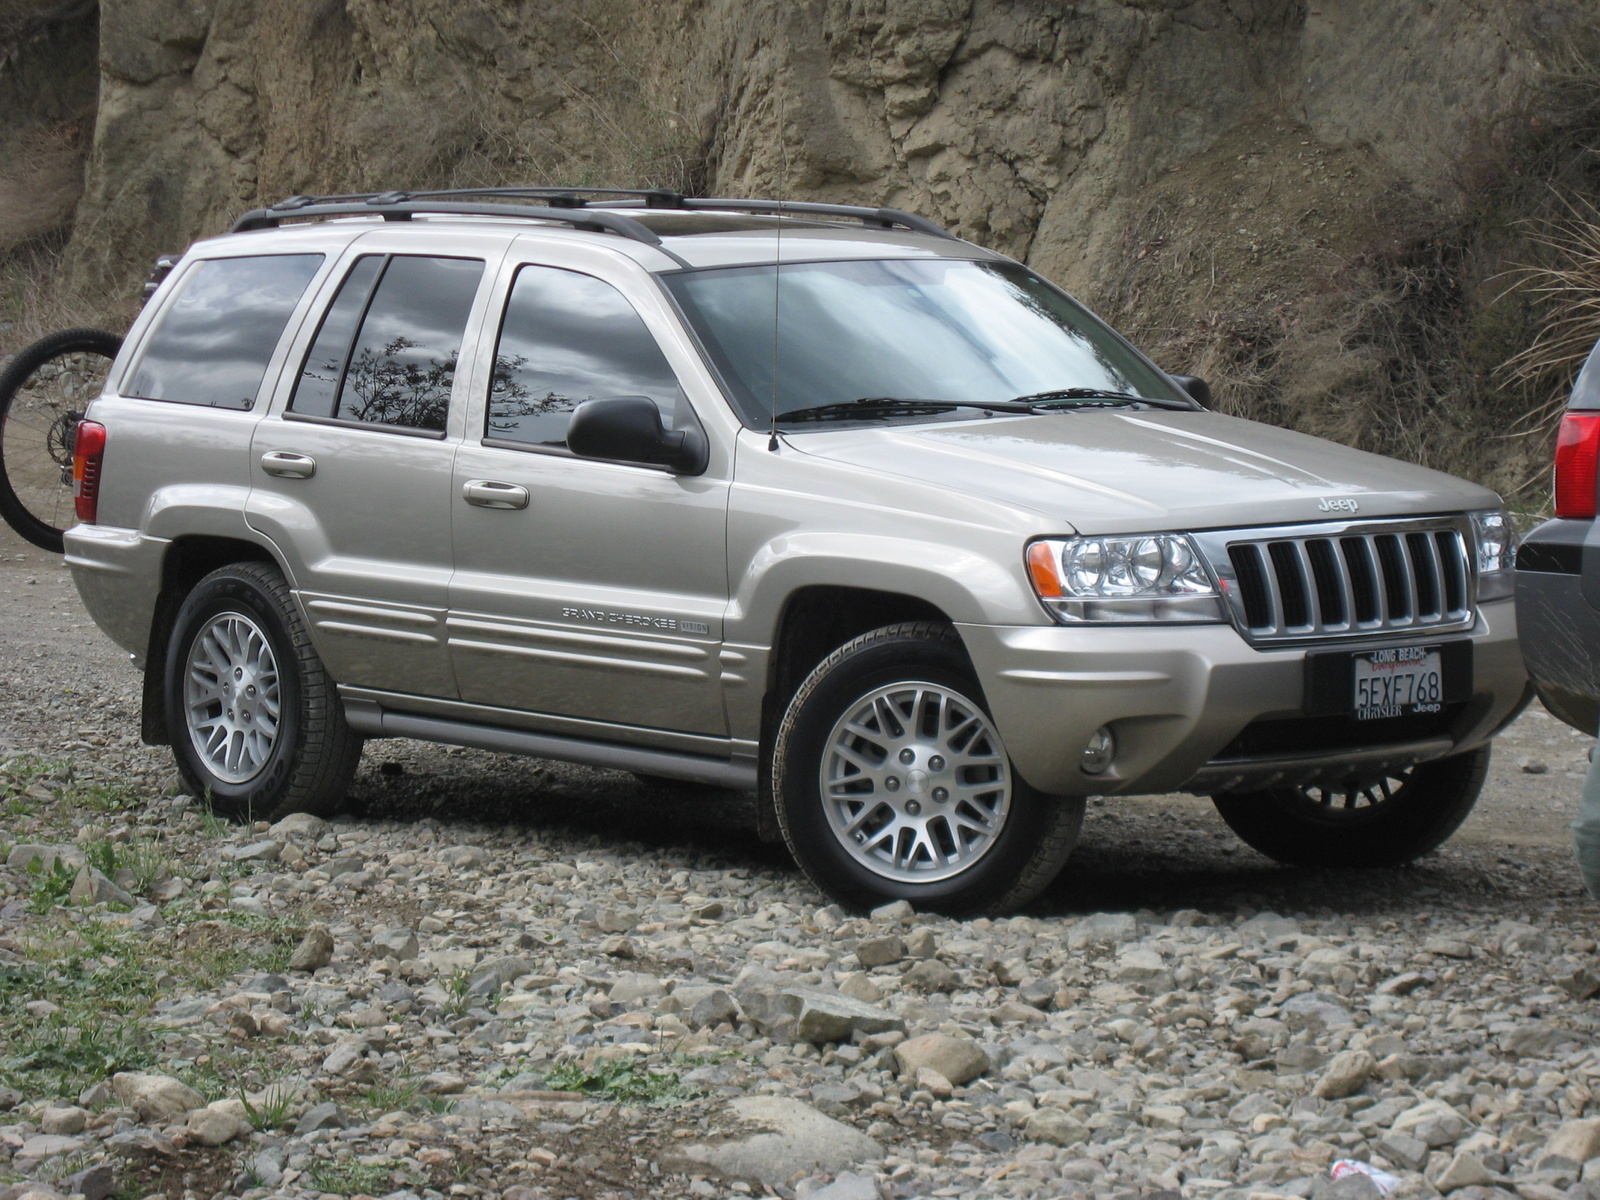 2004 jeep grand cherokee consumer reviews 2 review ebooks. Cars Review. Best American Auto & Cars Review